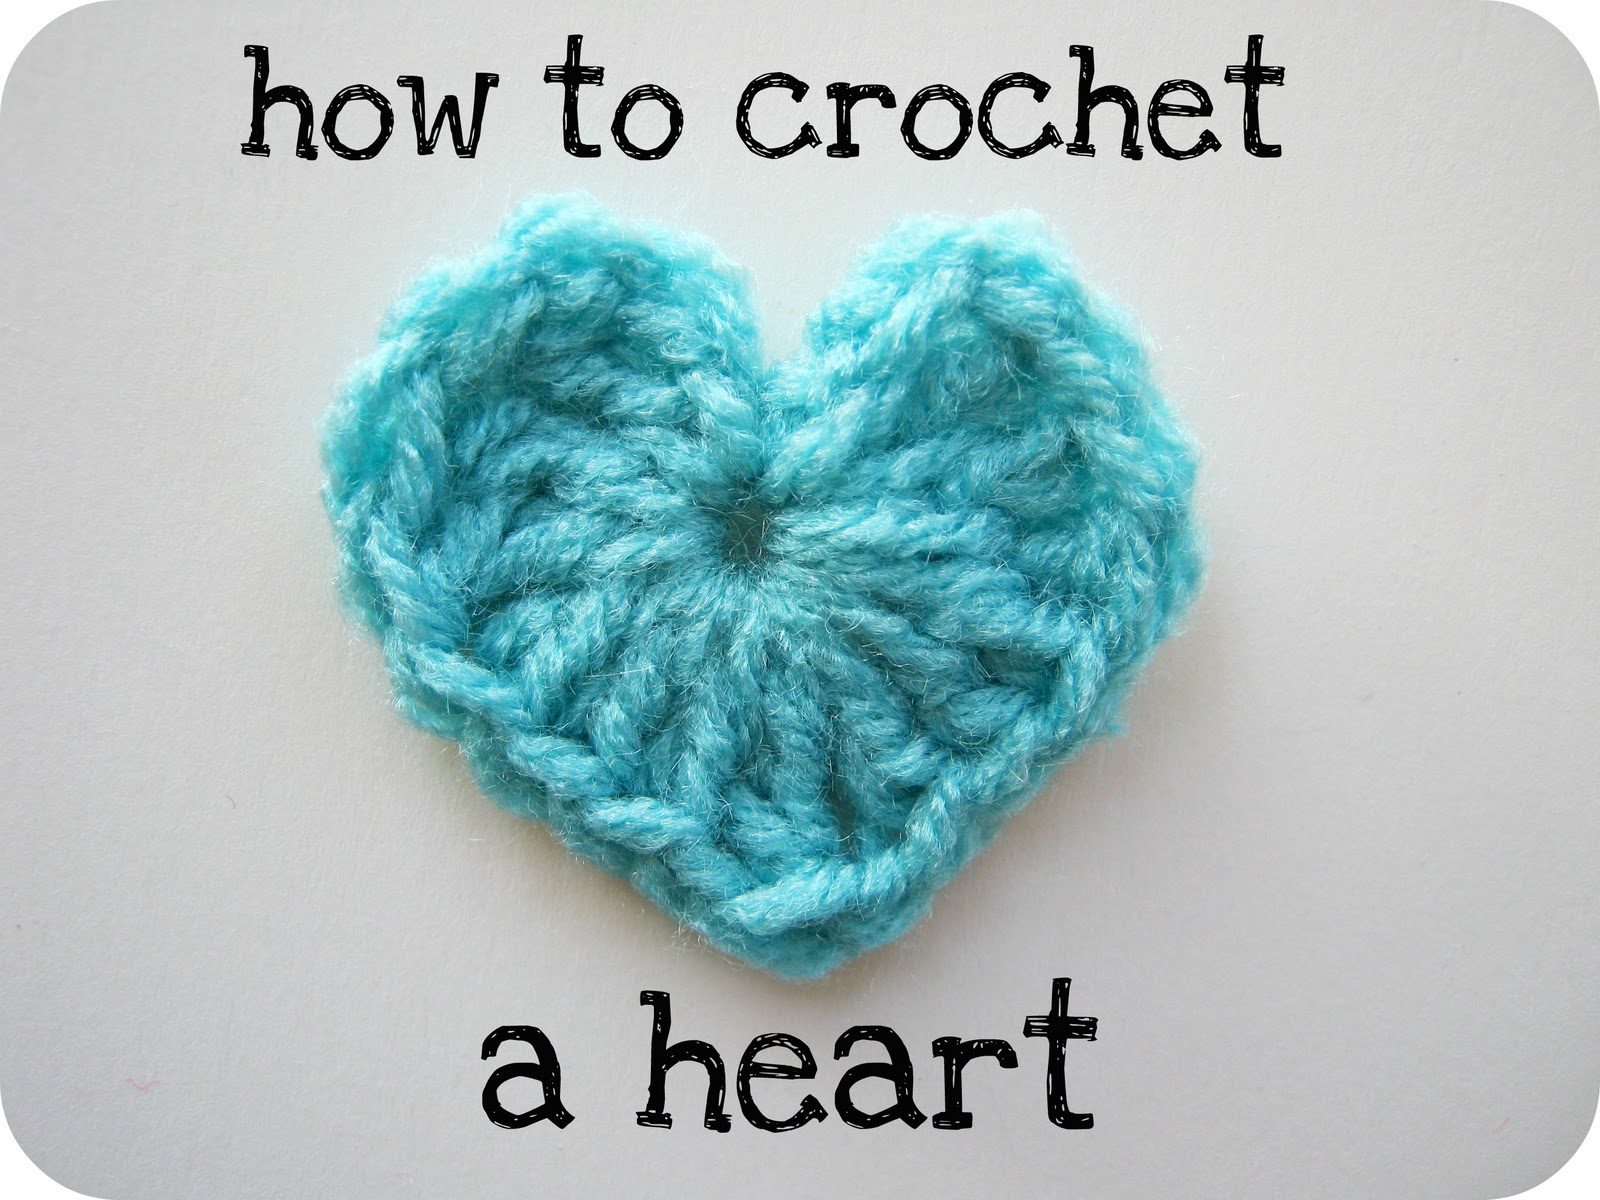 How To Crochet Basics : corazon de crochet tenEis otro modelo de corazon de crochet